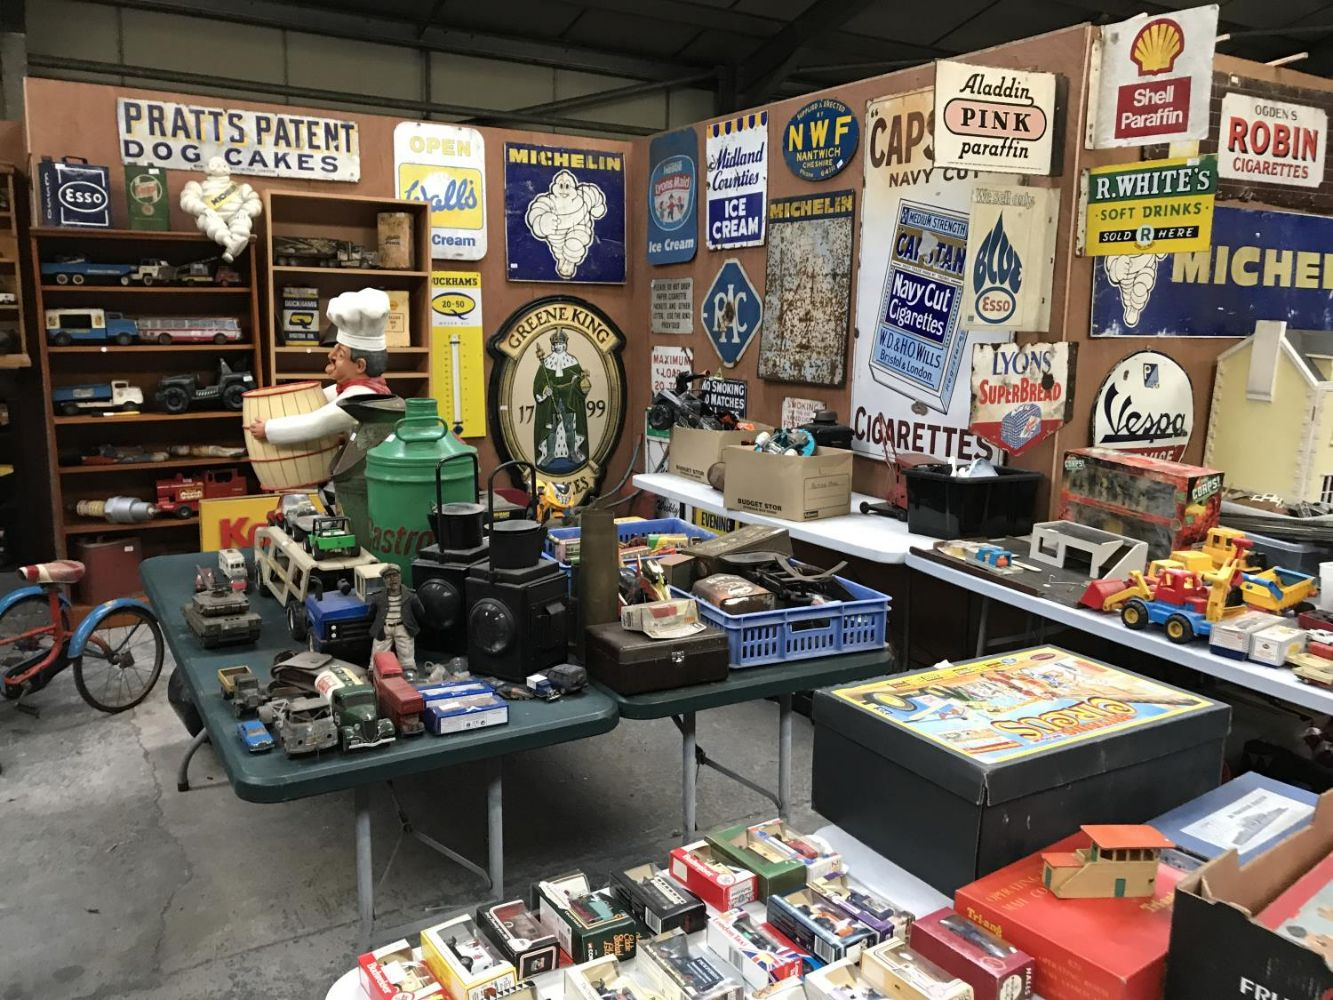 Two Day Auction Of Collectables, Antiques, Furniture, Vintage Items including a special sale of Militaria - COLLECTION BY APPOINTMENT